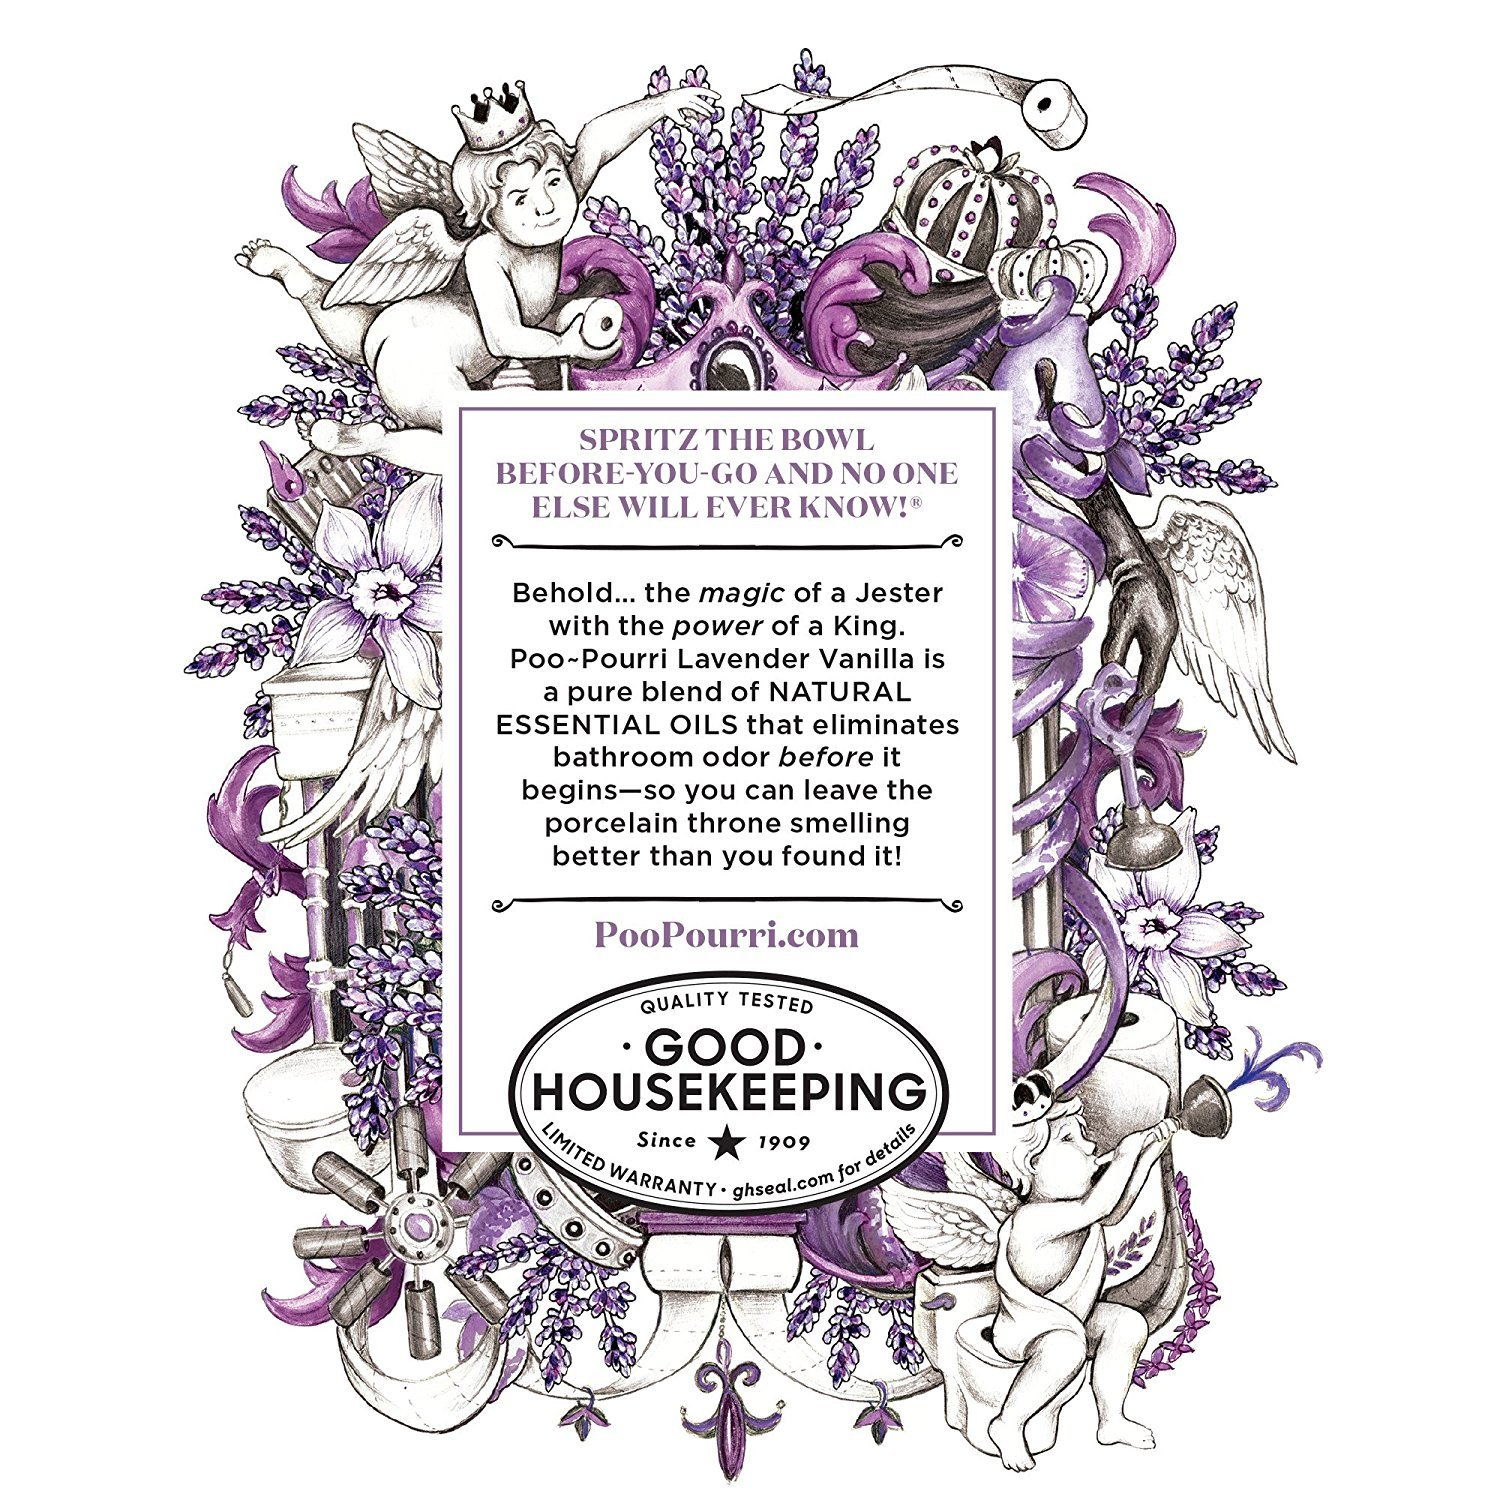 Poo-Pourri Before-You-Go Bathroom Spray, Lavender Vanilla - 2 Ounce, 2 Pack with Ornament Box   by Poo-Pourri (Image #3)